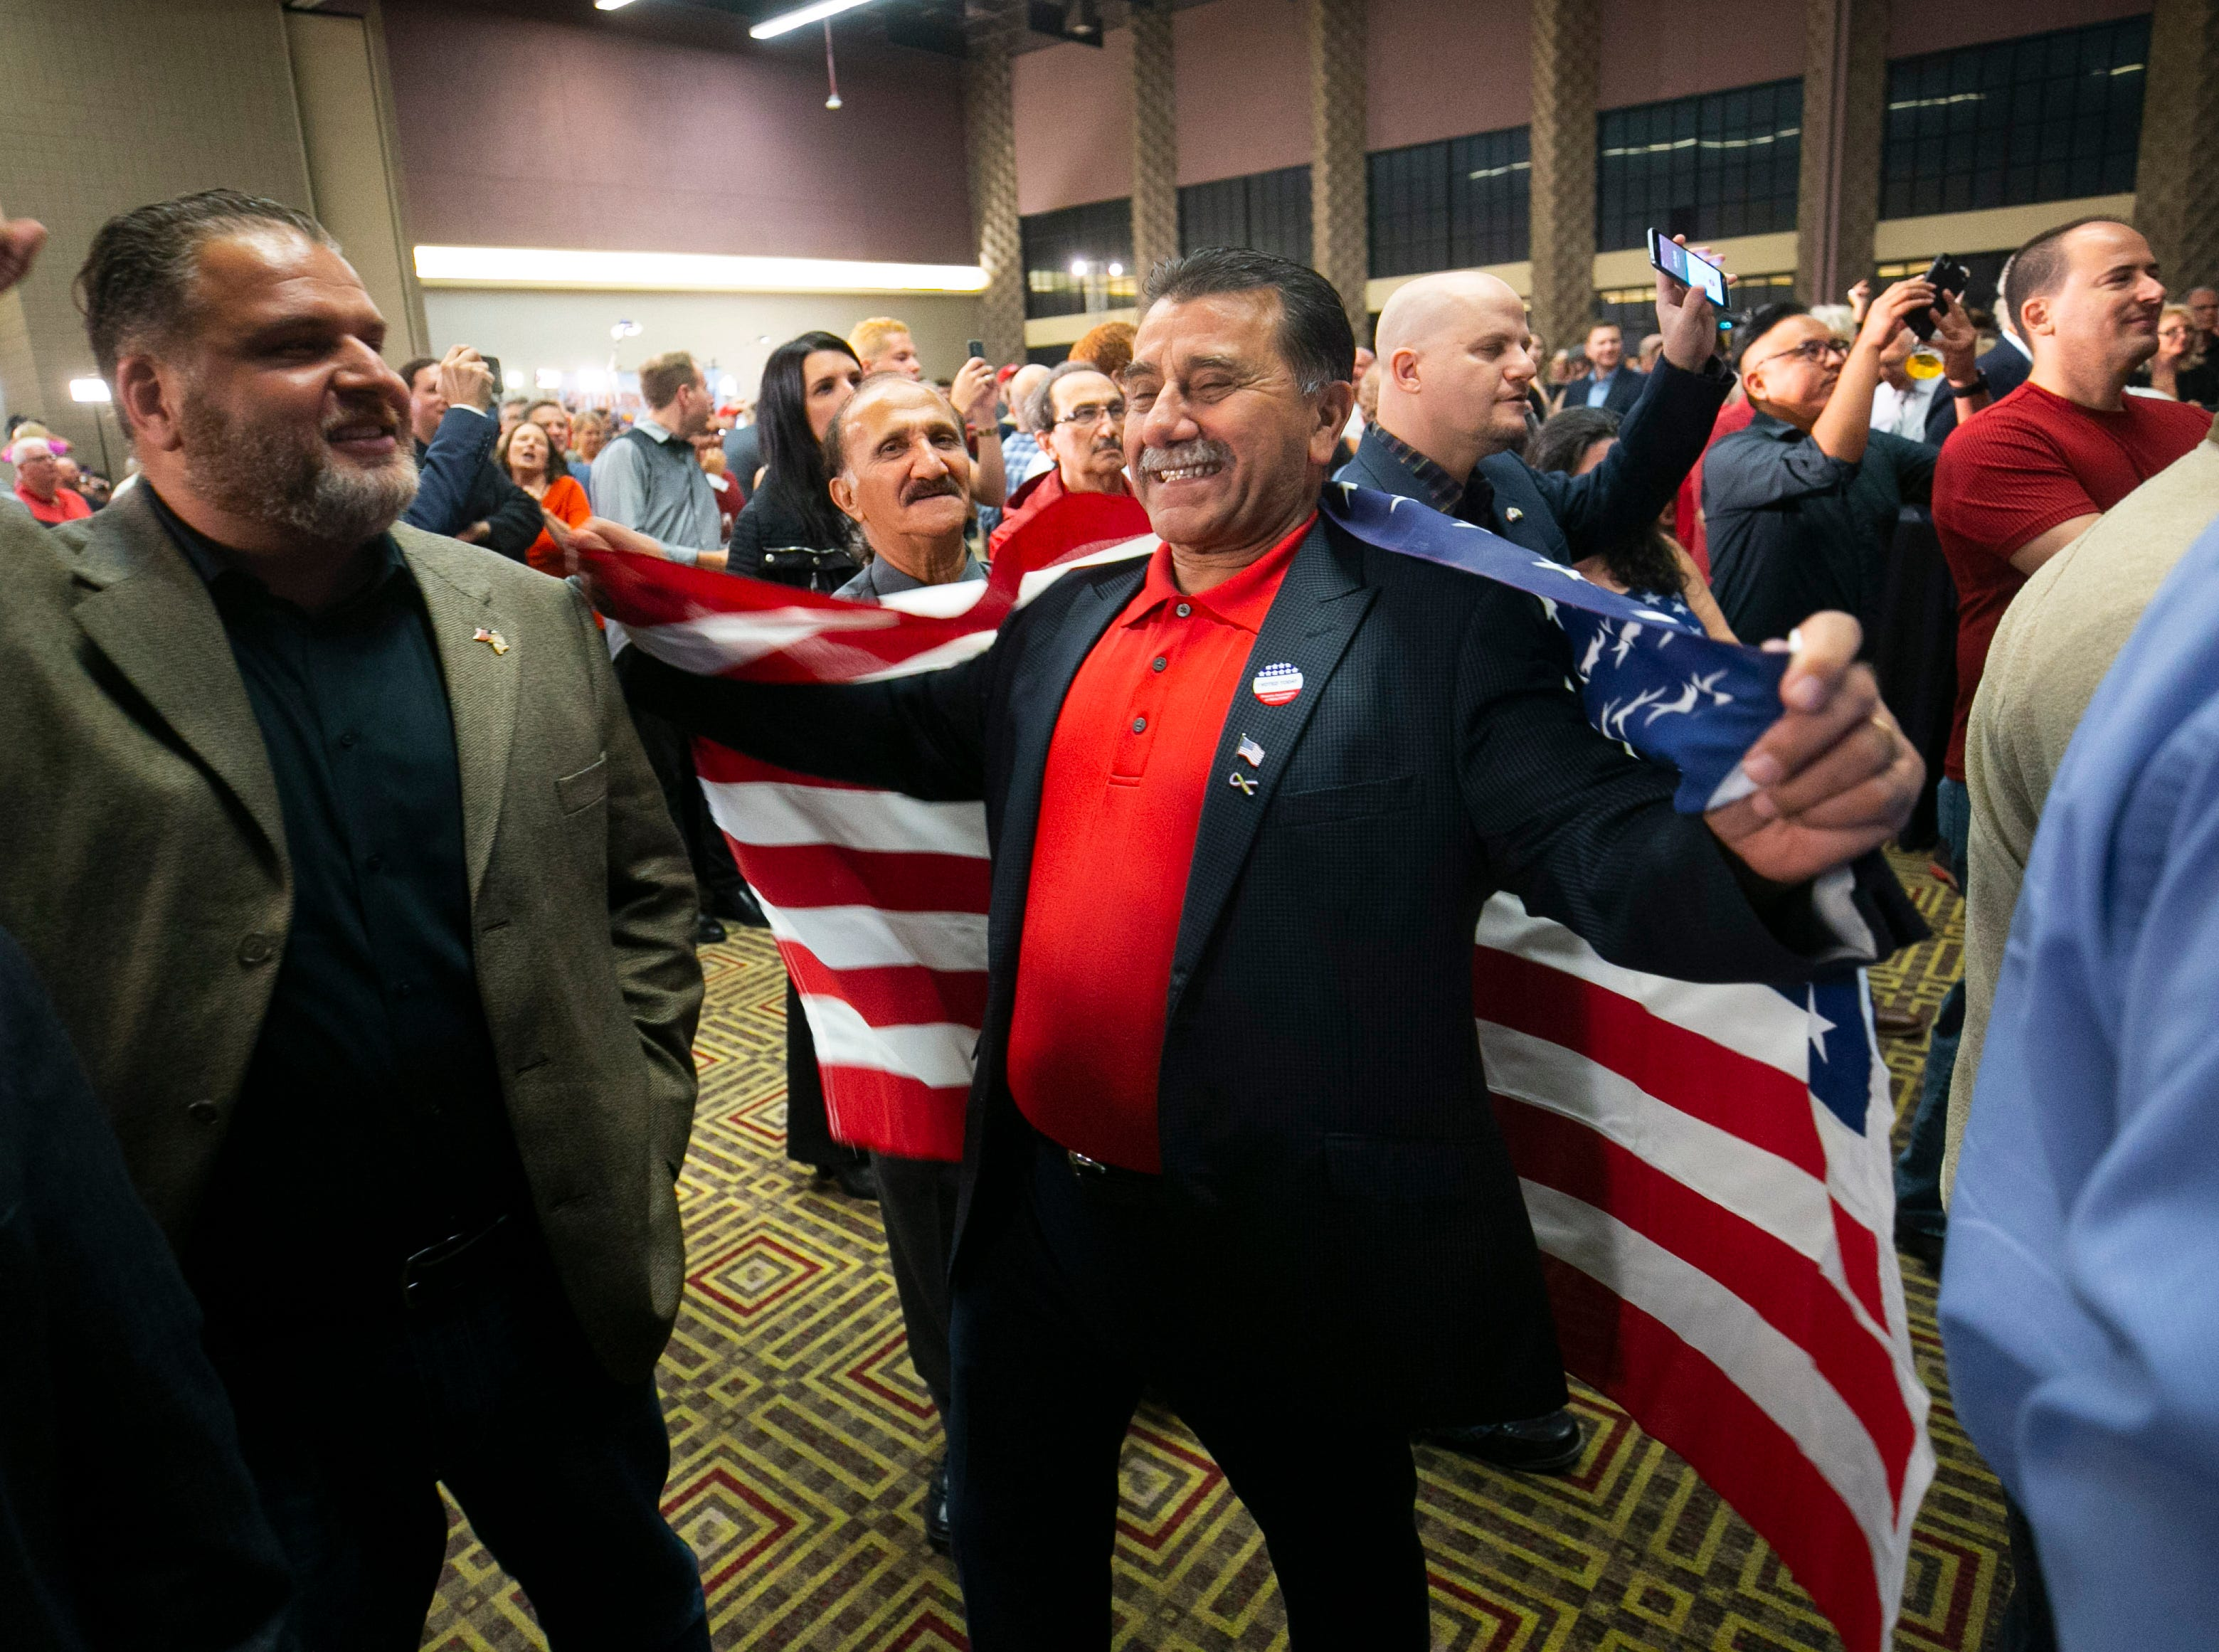 Republicans Michael Jabri of Phoenix (left) of Phoenix and Ashur Warda of Peoria watch early results during the Republican watch party at the DoubleTree Resort in Scottsdale on Election Day for the midterms on Tuesday, November 6, 2018.